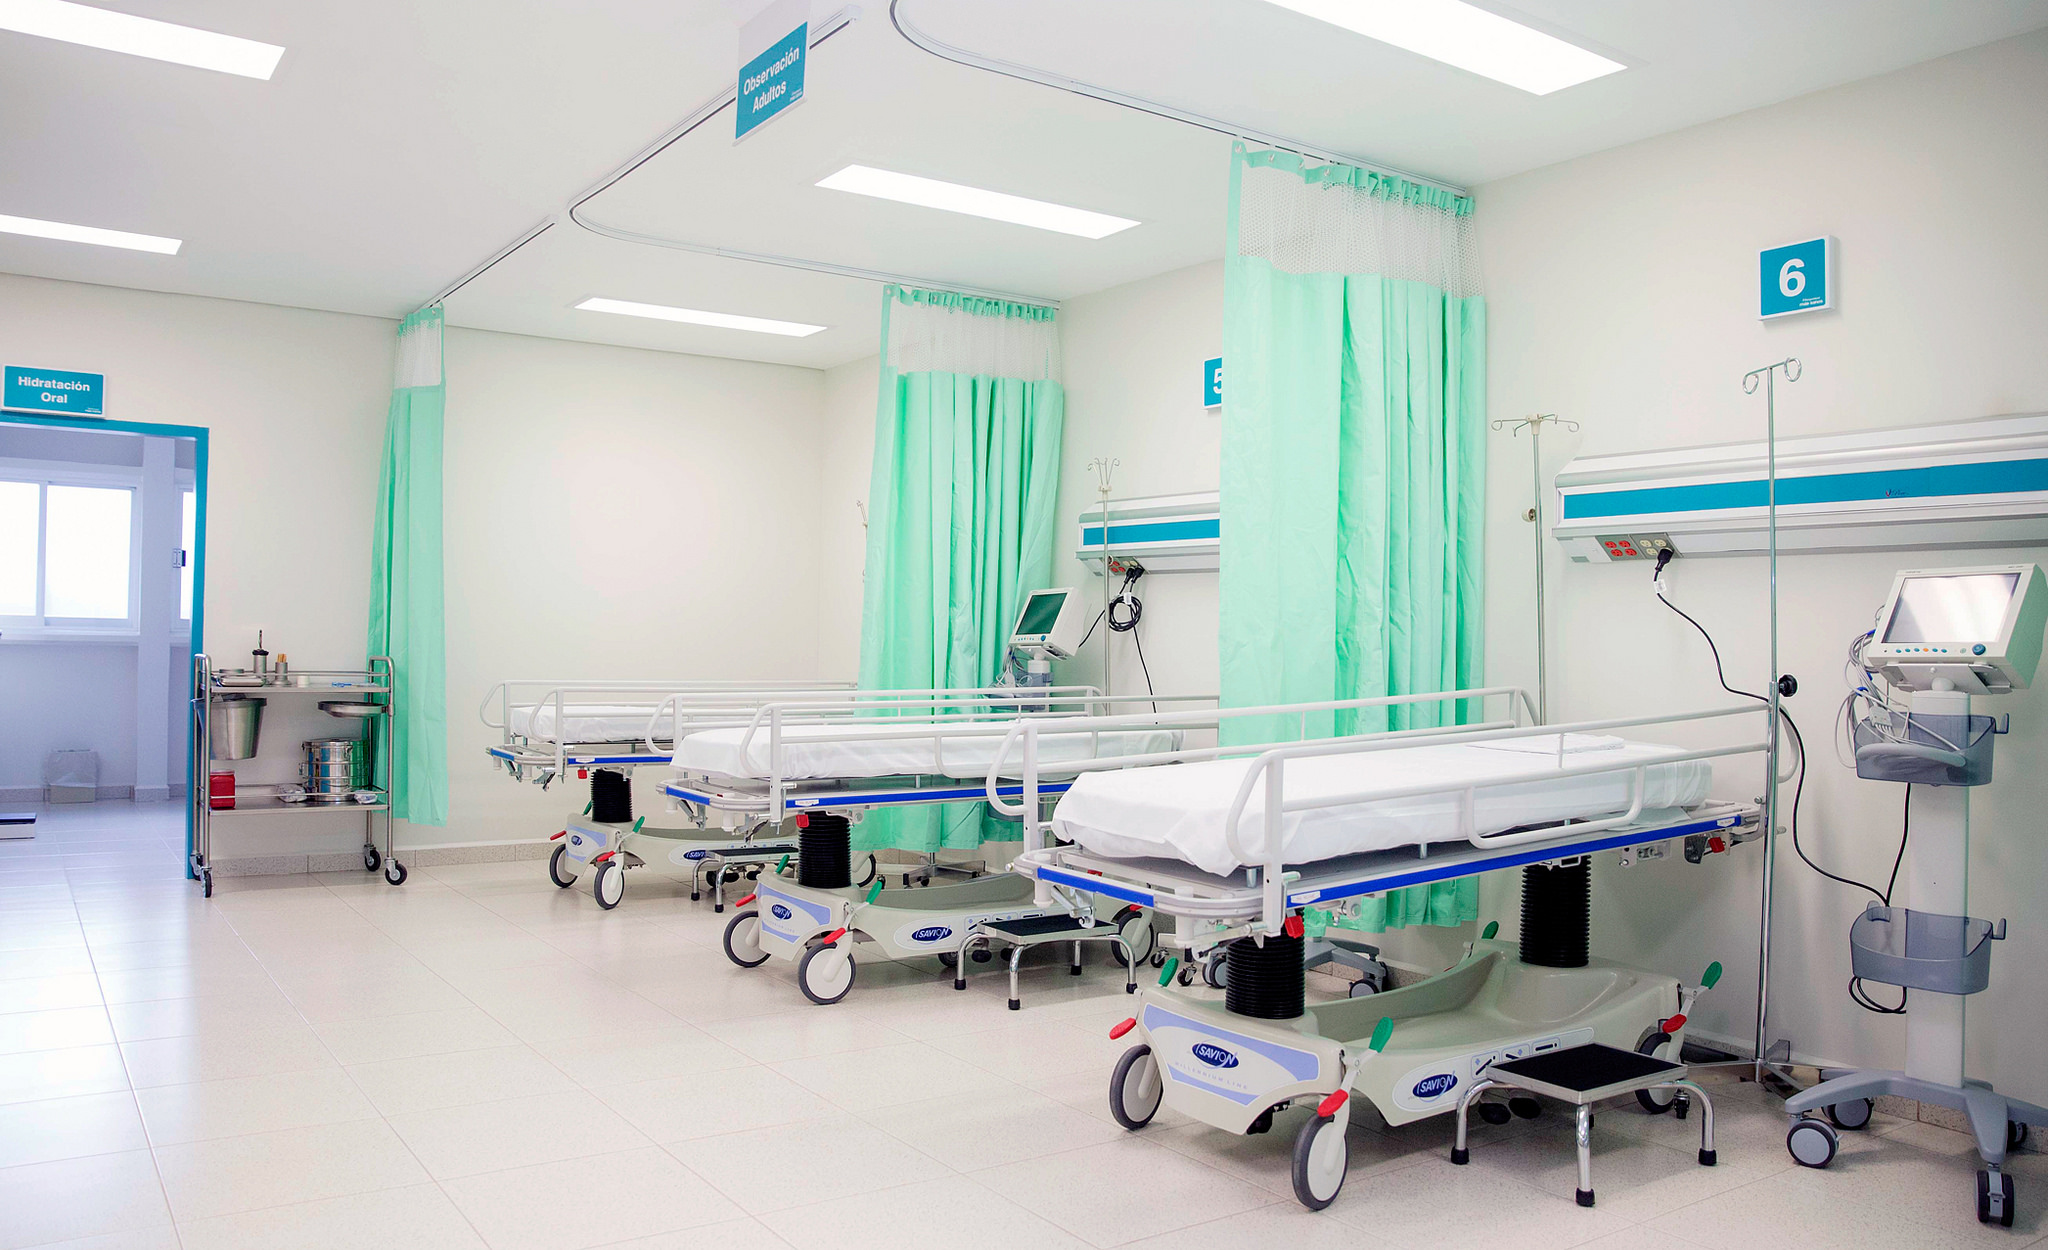 /cms/uploads/image/file/238386/hospital-chinconcuac.jpg